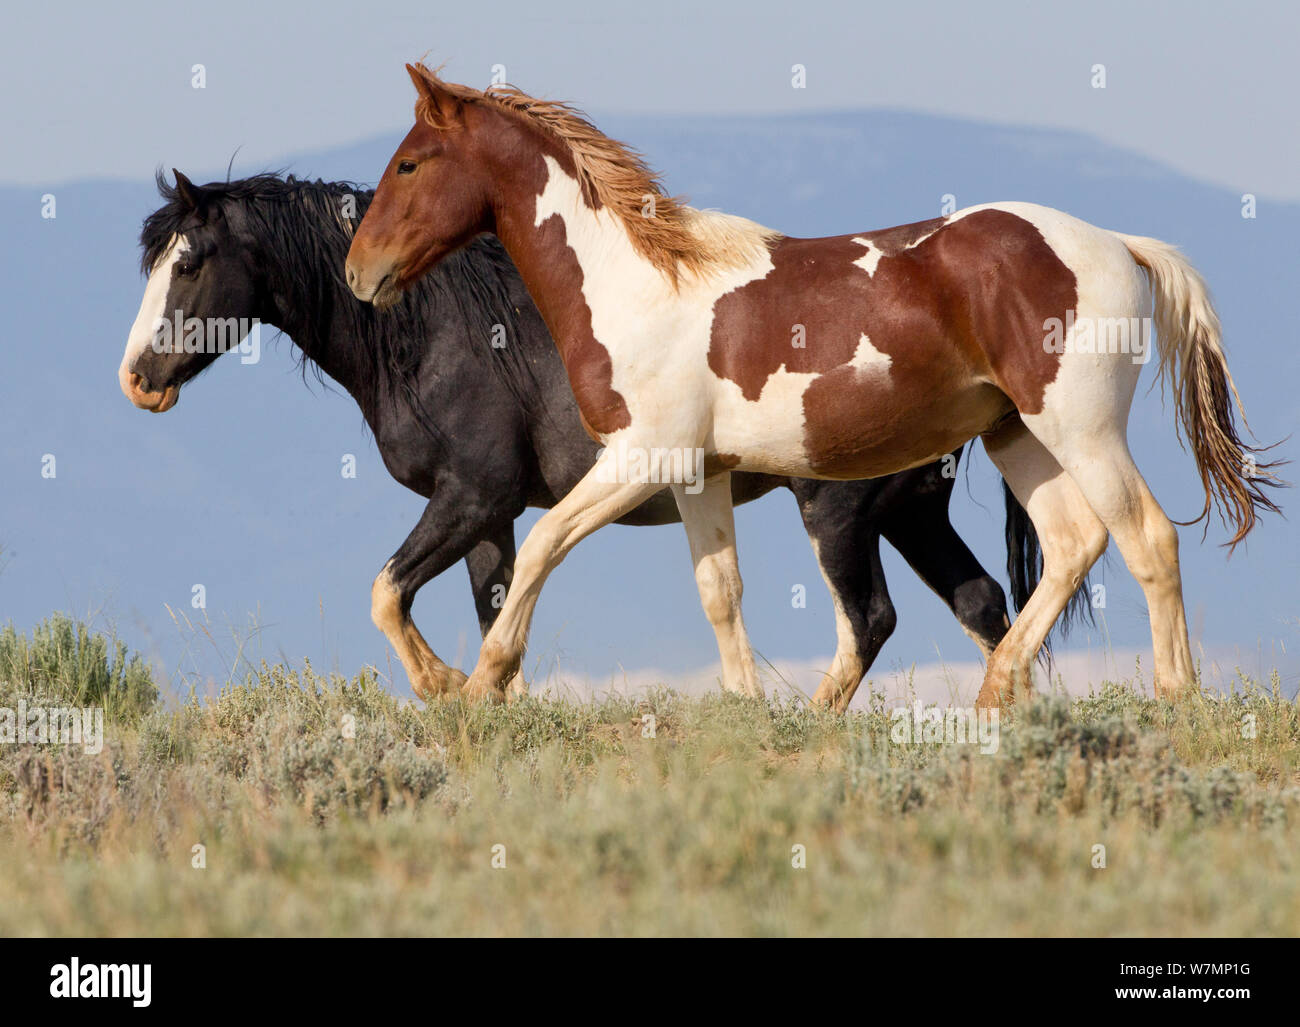 Wild Horses Mustangs Black And Pinto Walking Together Mccullough Peaks Wyoming Usa Stock Photo Alamy